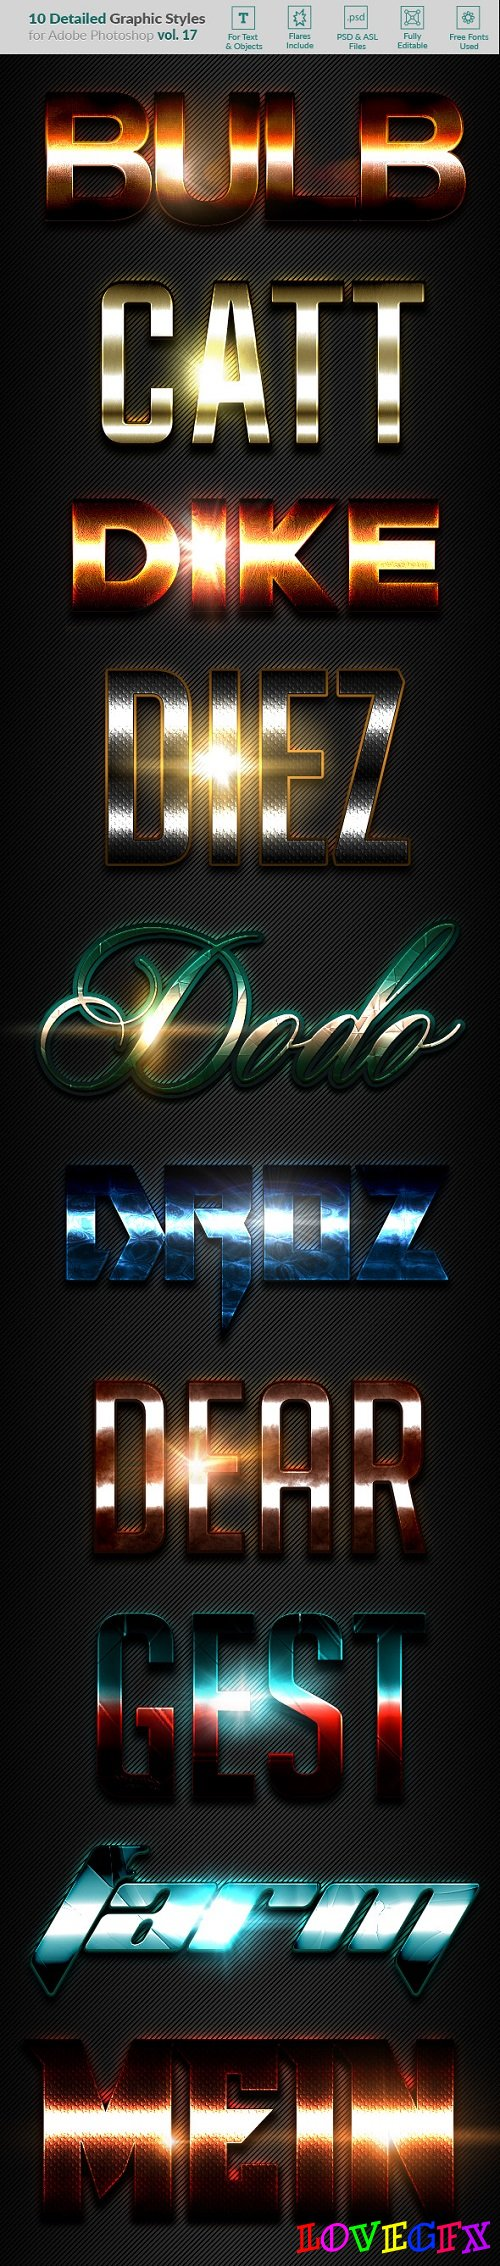 10 Text Effects Vol. 17 21062030